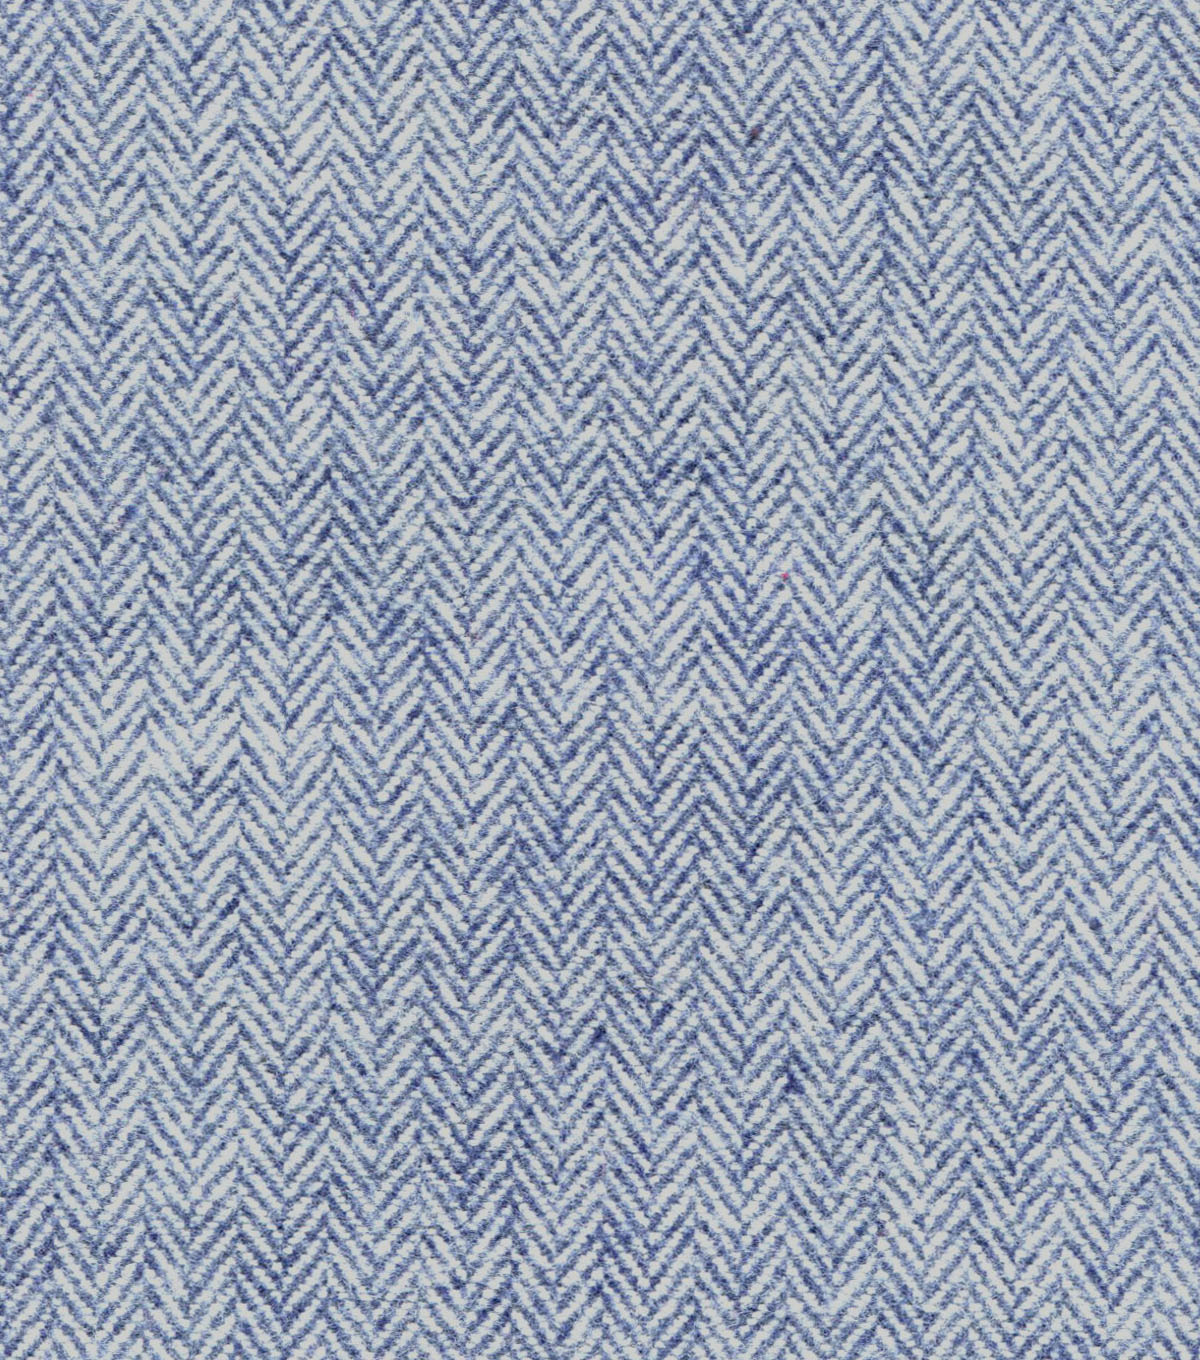 Plaiditudes Brushed Cotton Fabric -Herringbone Navy